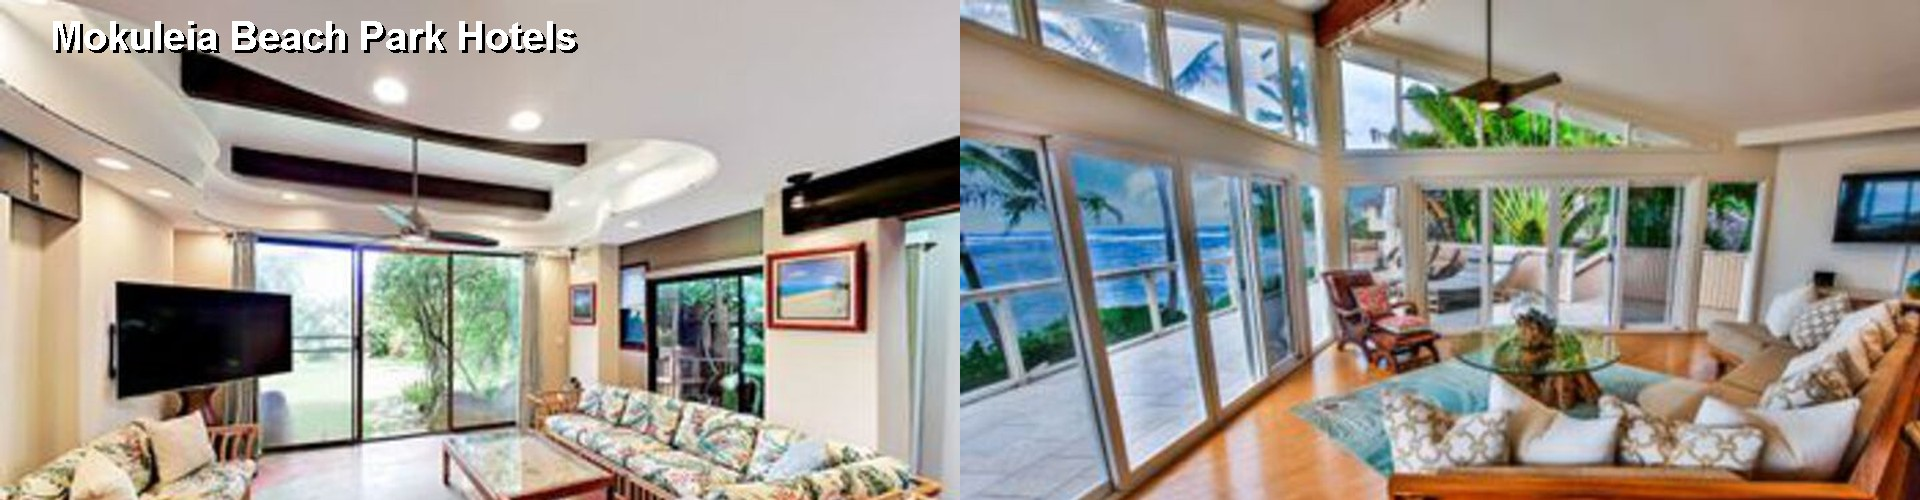 5 Best Hotels near Mokuleia Beach Park